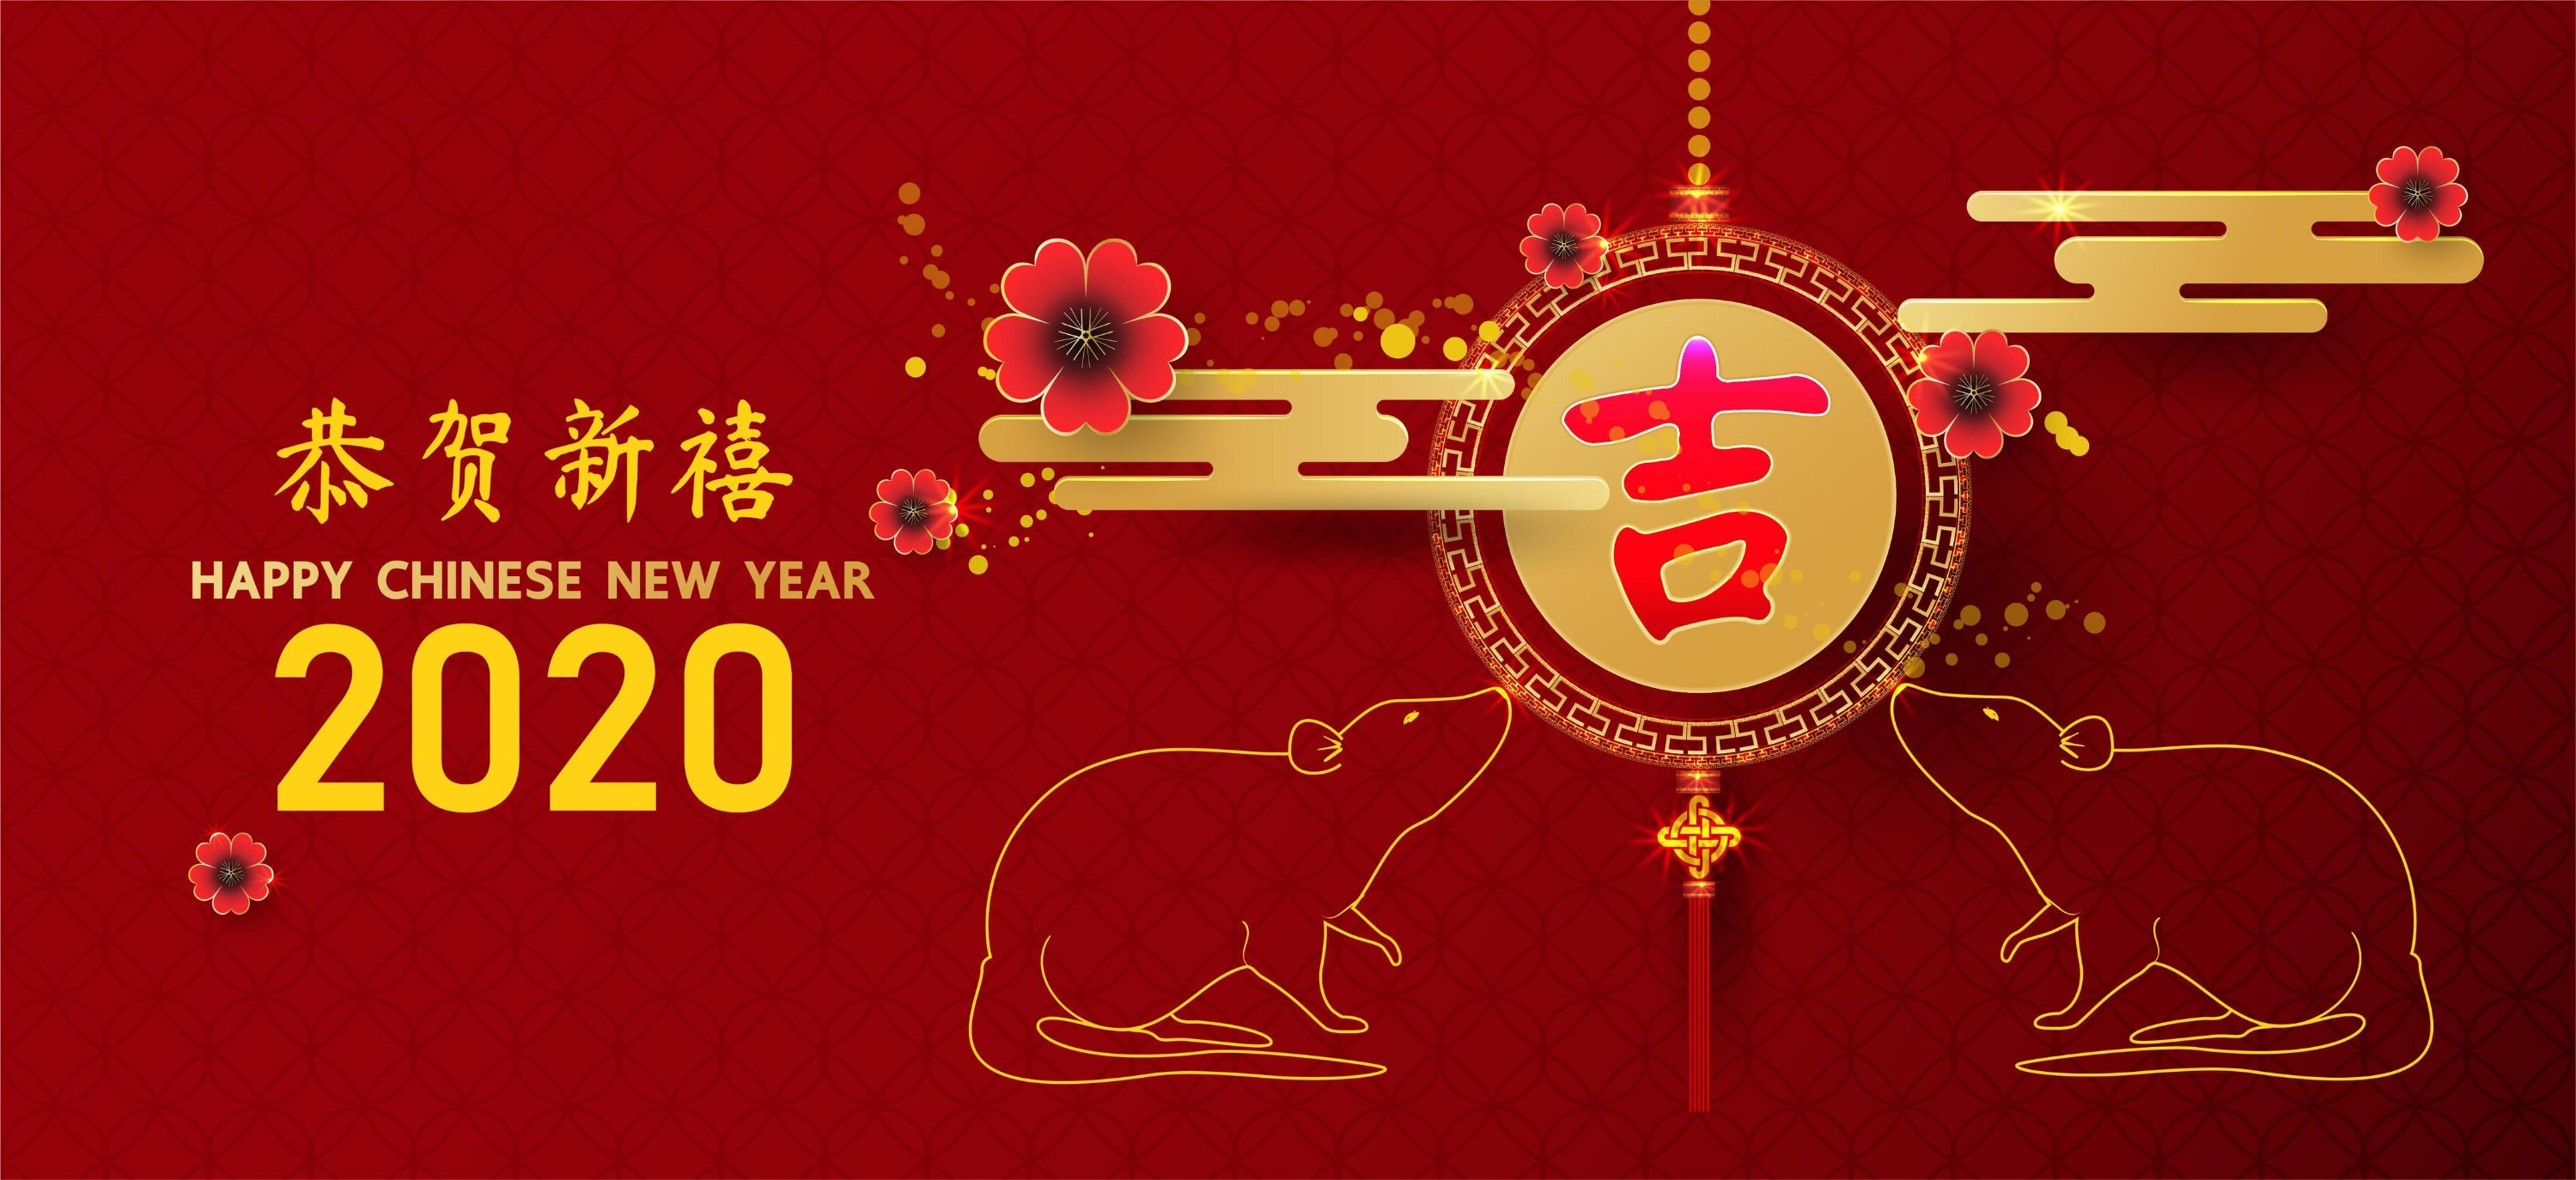 chinese-new-year-background-with-rats-and-flowers-vector8496952302415499957.jpg